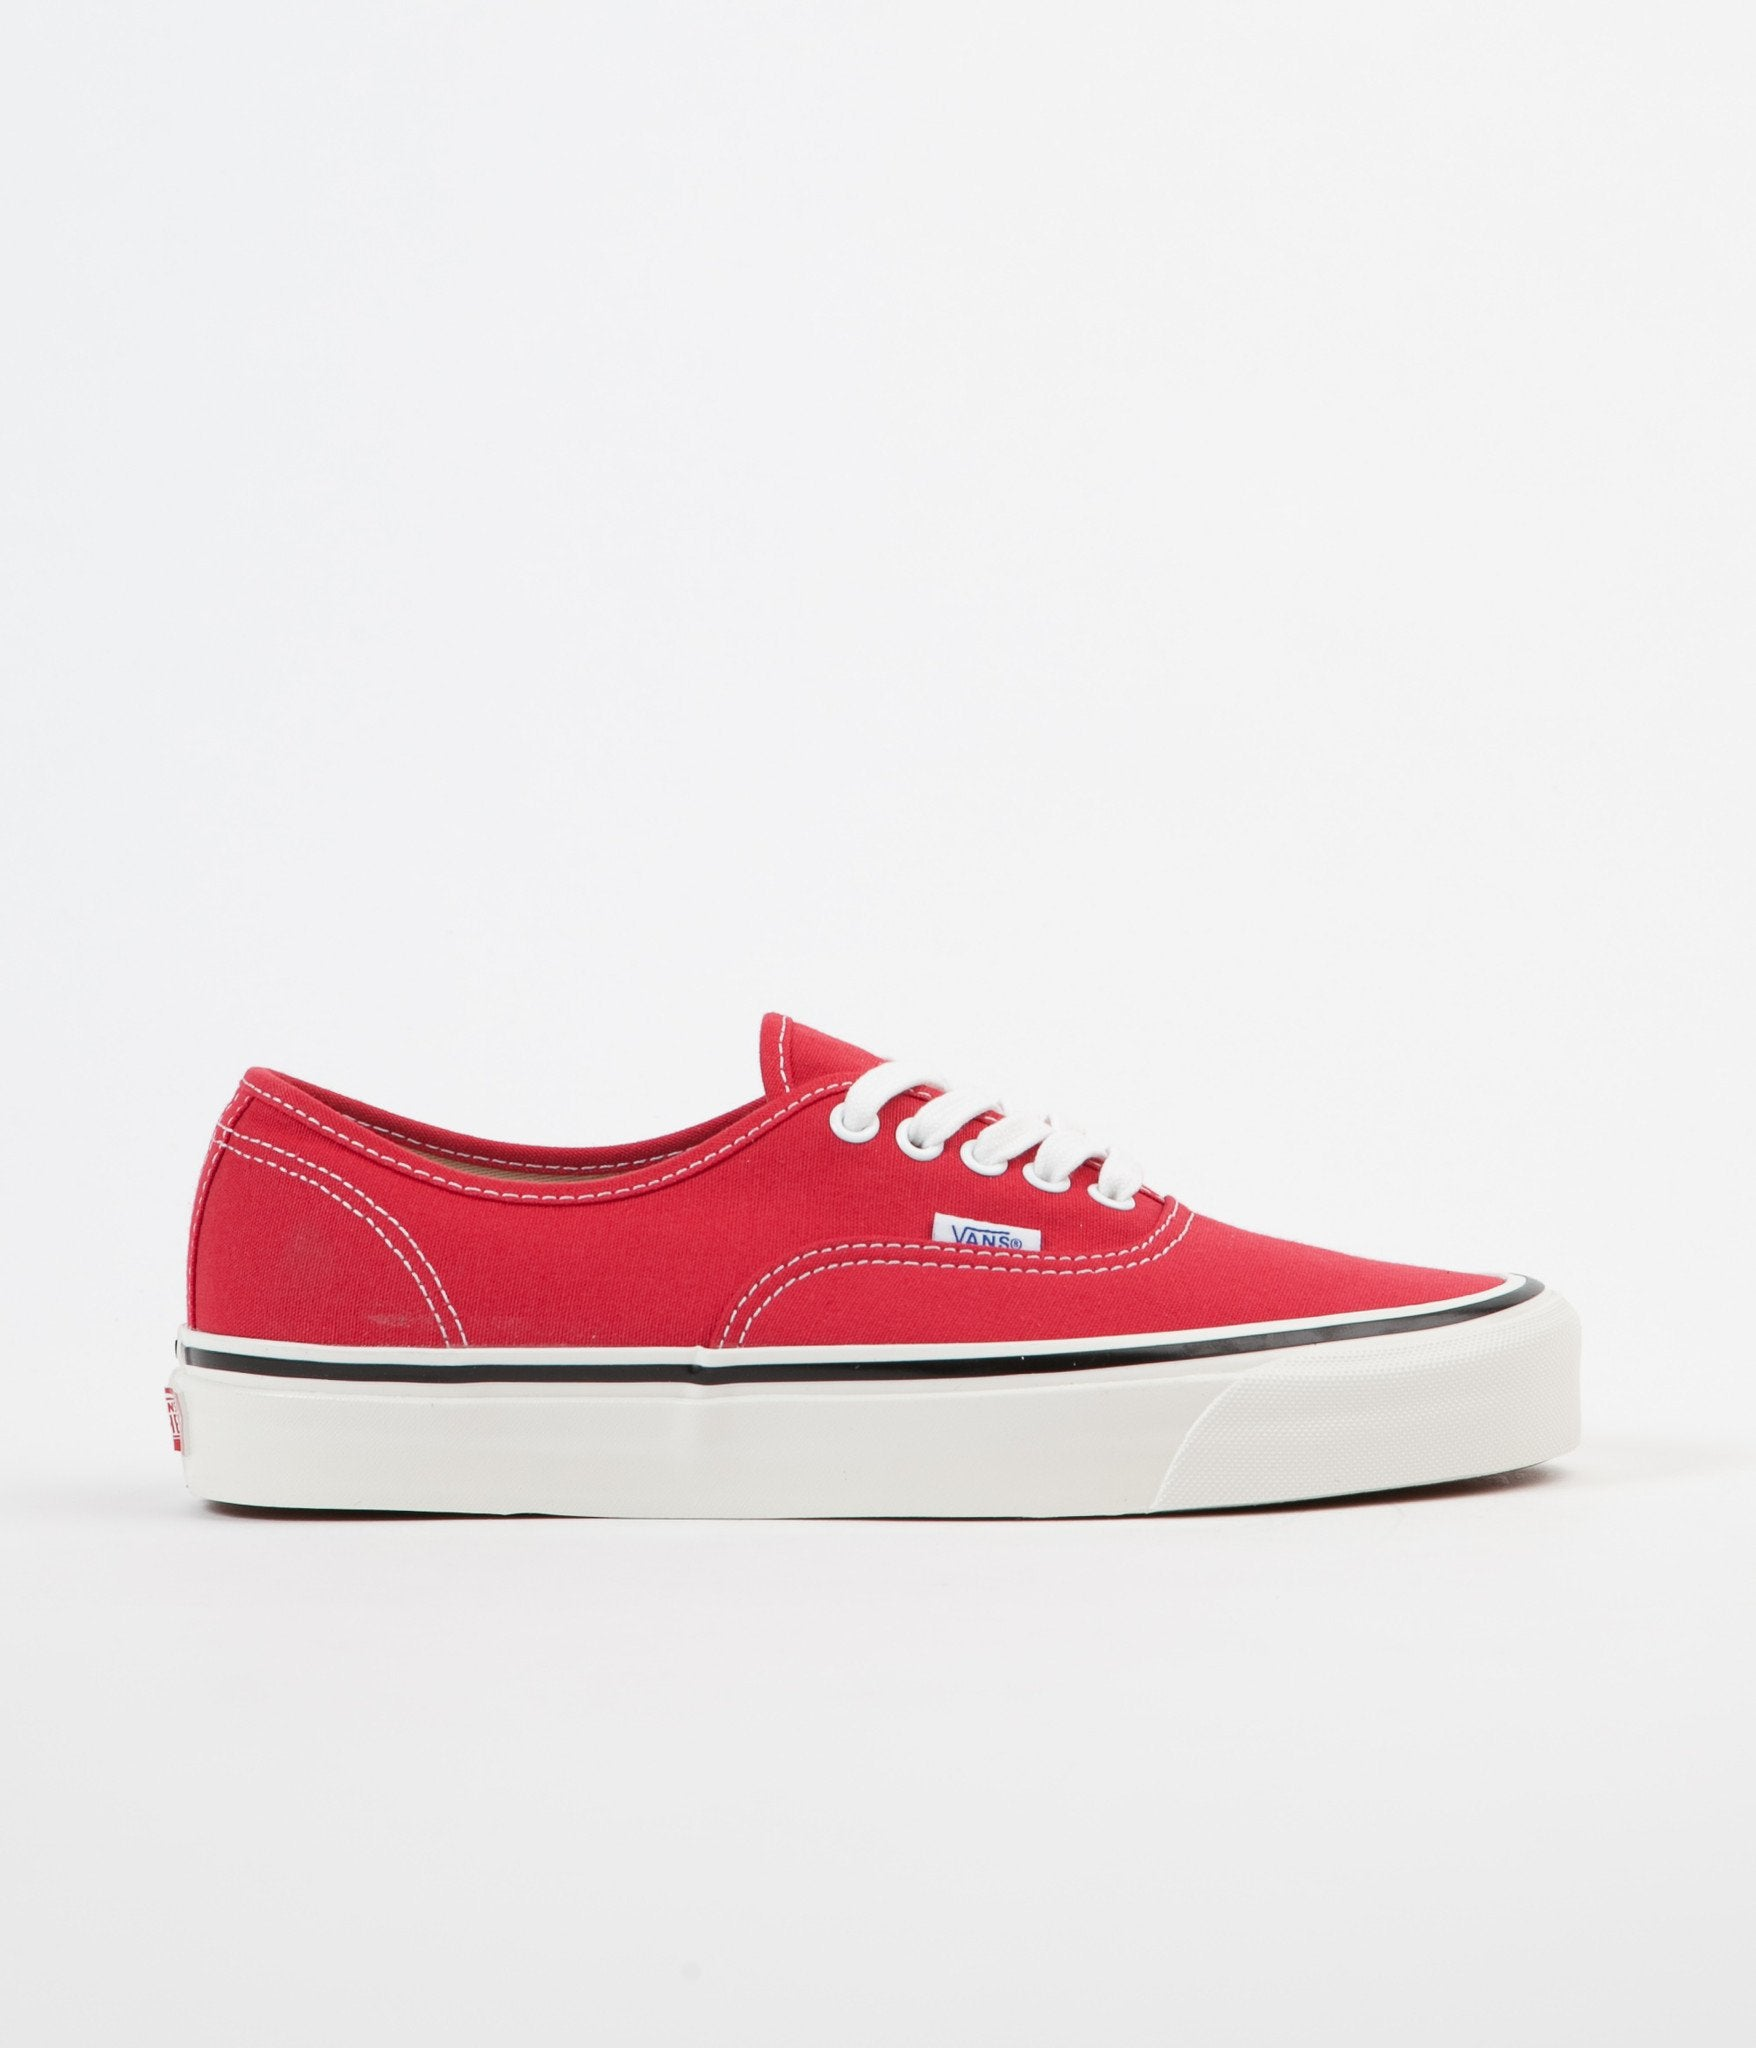 581fb53735 ... Vans Authentic 44 DX Anaheim Factory Shoes - Racing Red ...